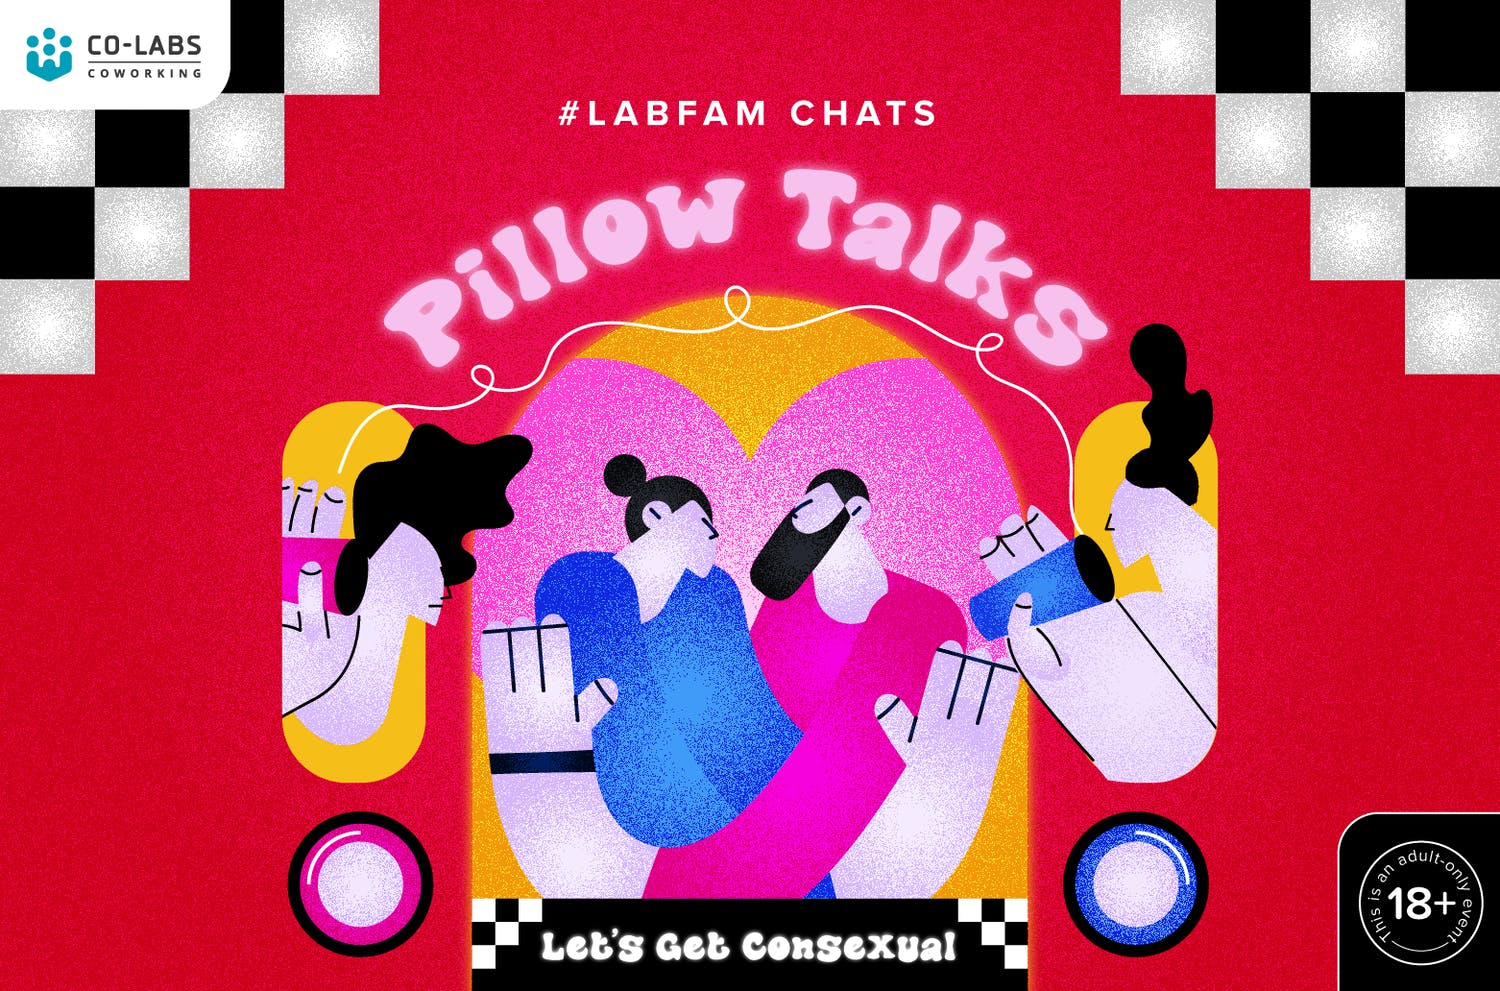 #LabFam Chats: Pillow Talks – Let's Get Consexual